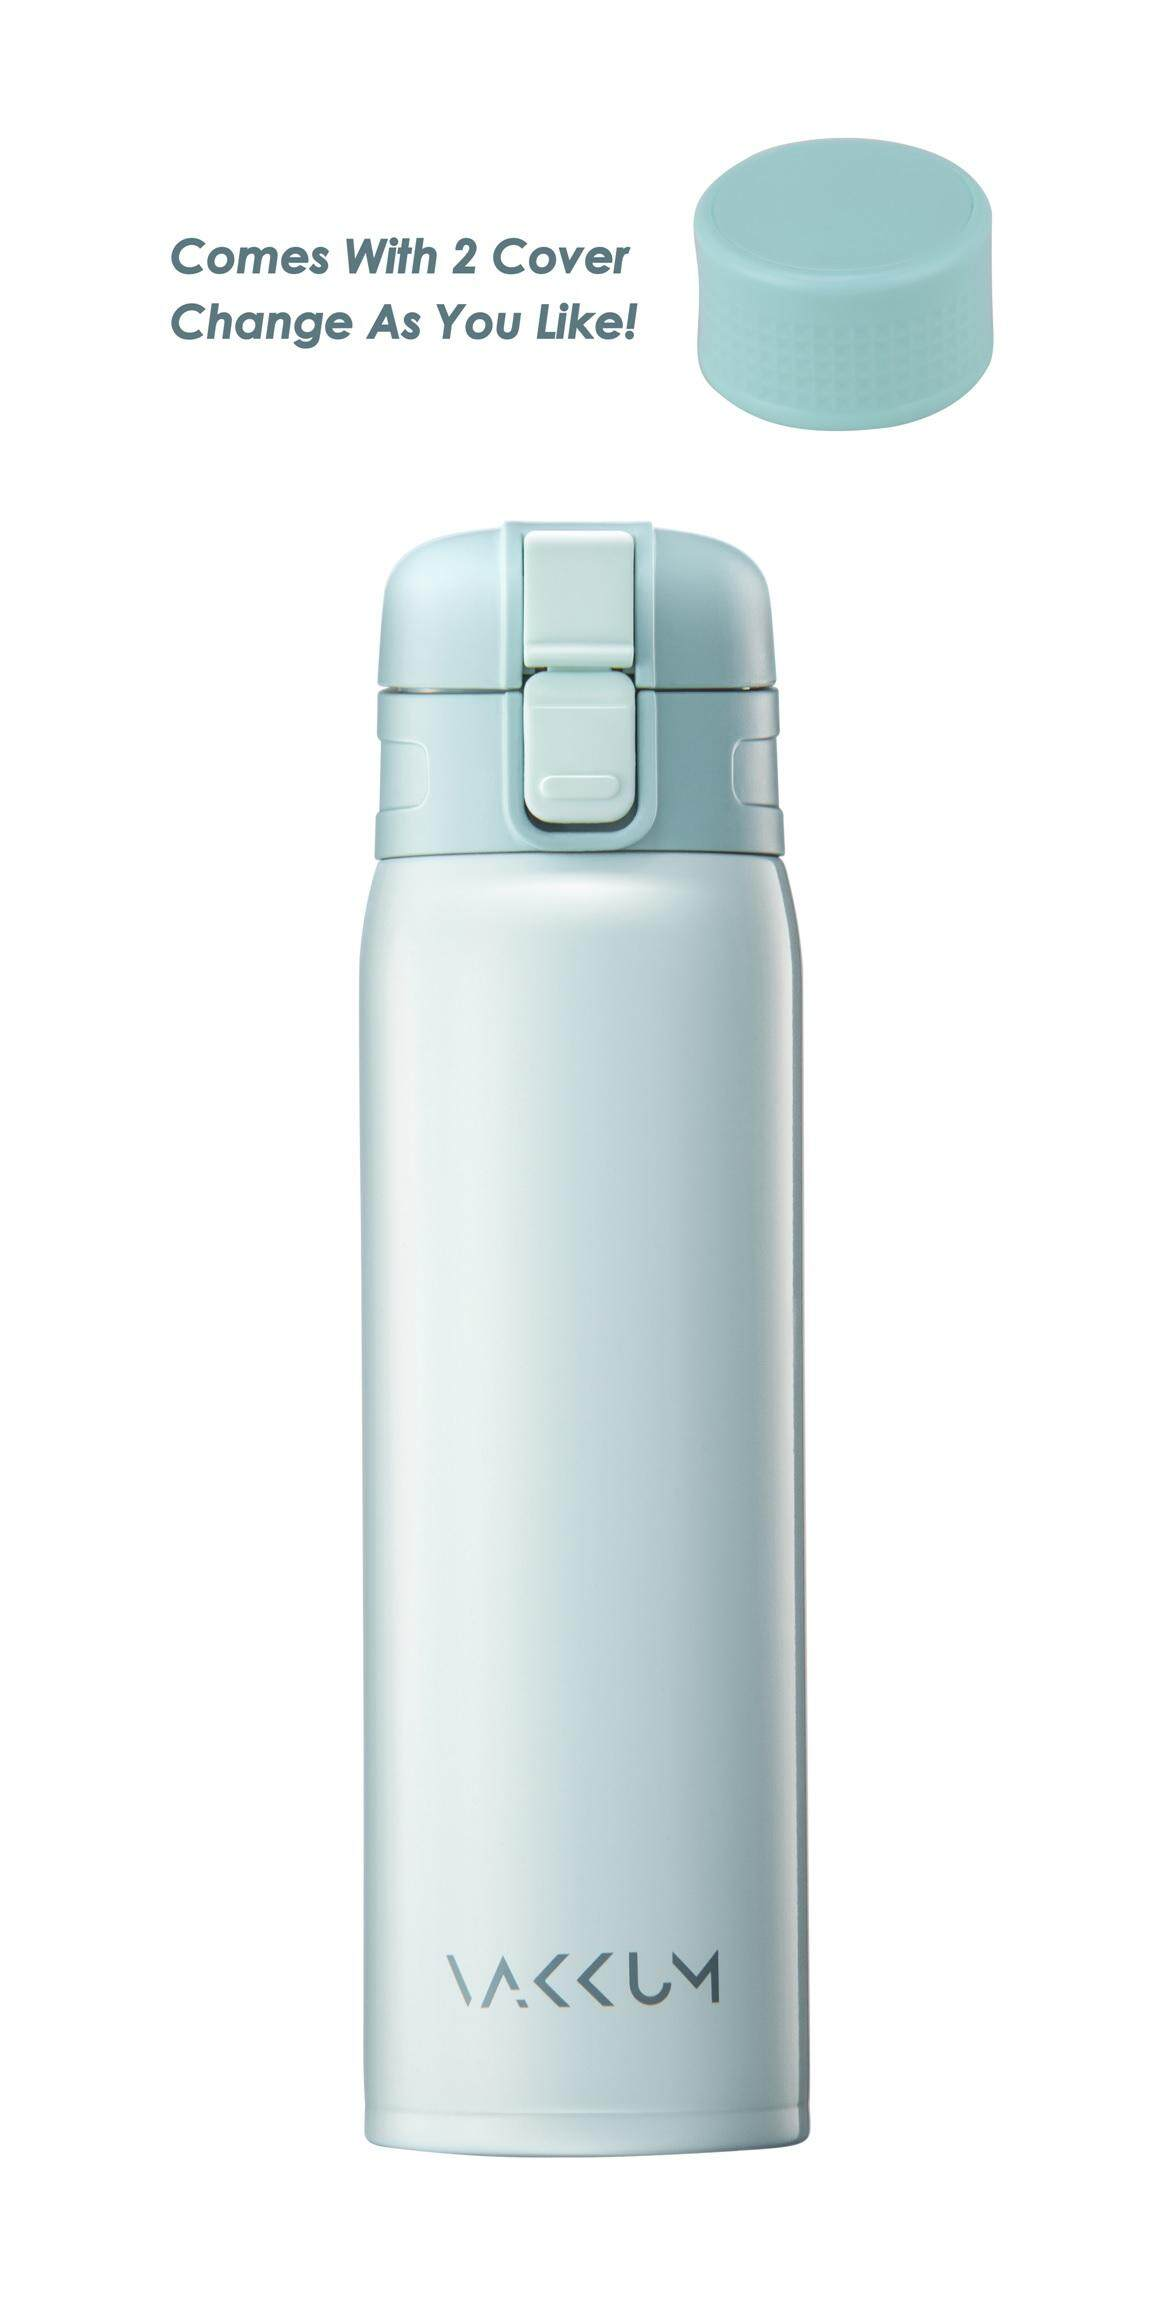 [LIVE] [OASIS SWISS] ANTI-BACTERIAL VAKKUM MADEL FLASK 500ml DOUBLE WALL S.S. BLUE